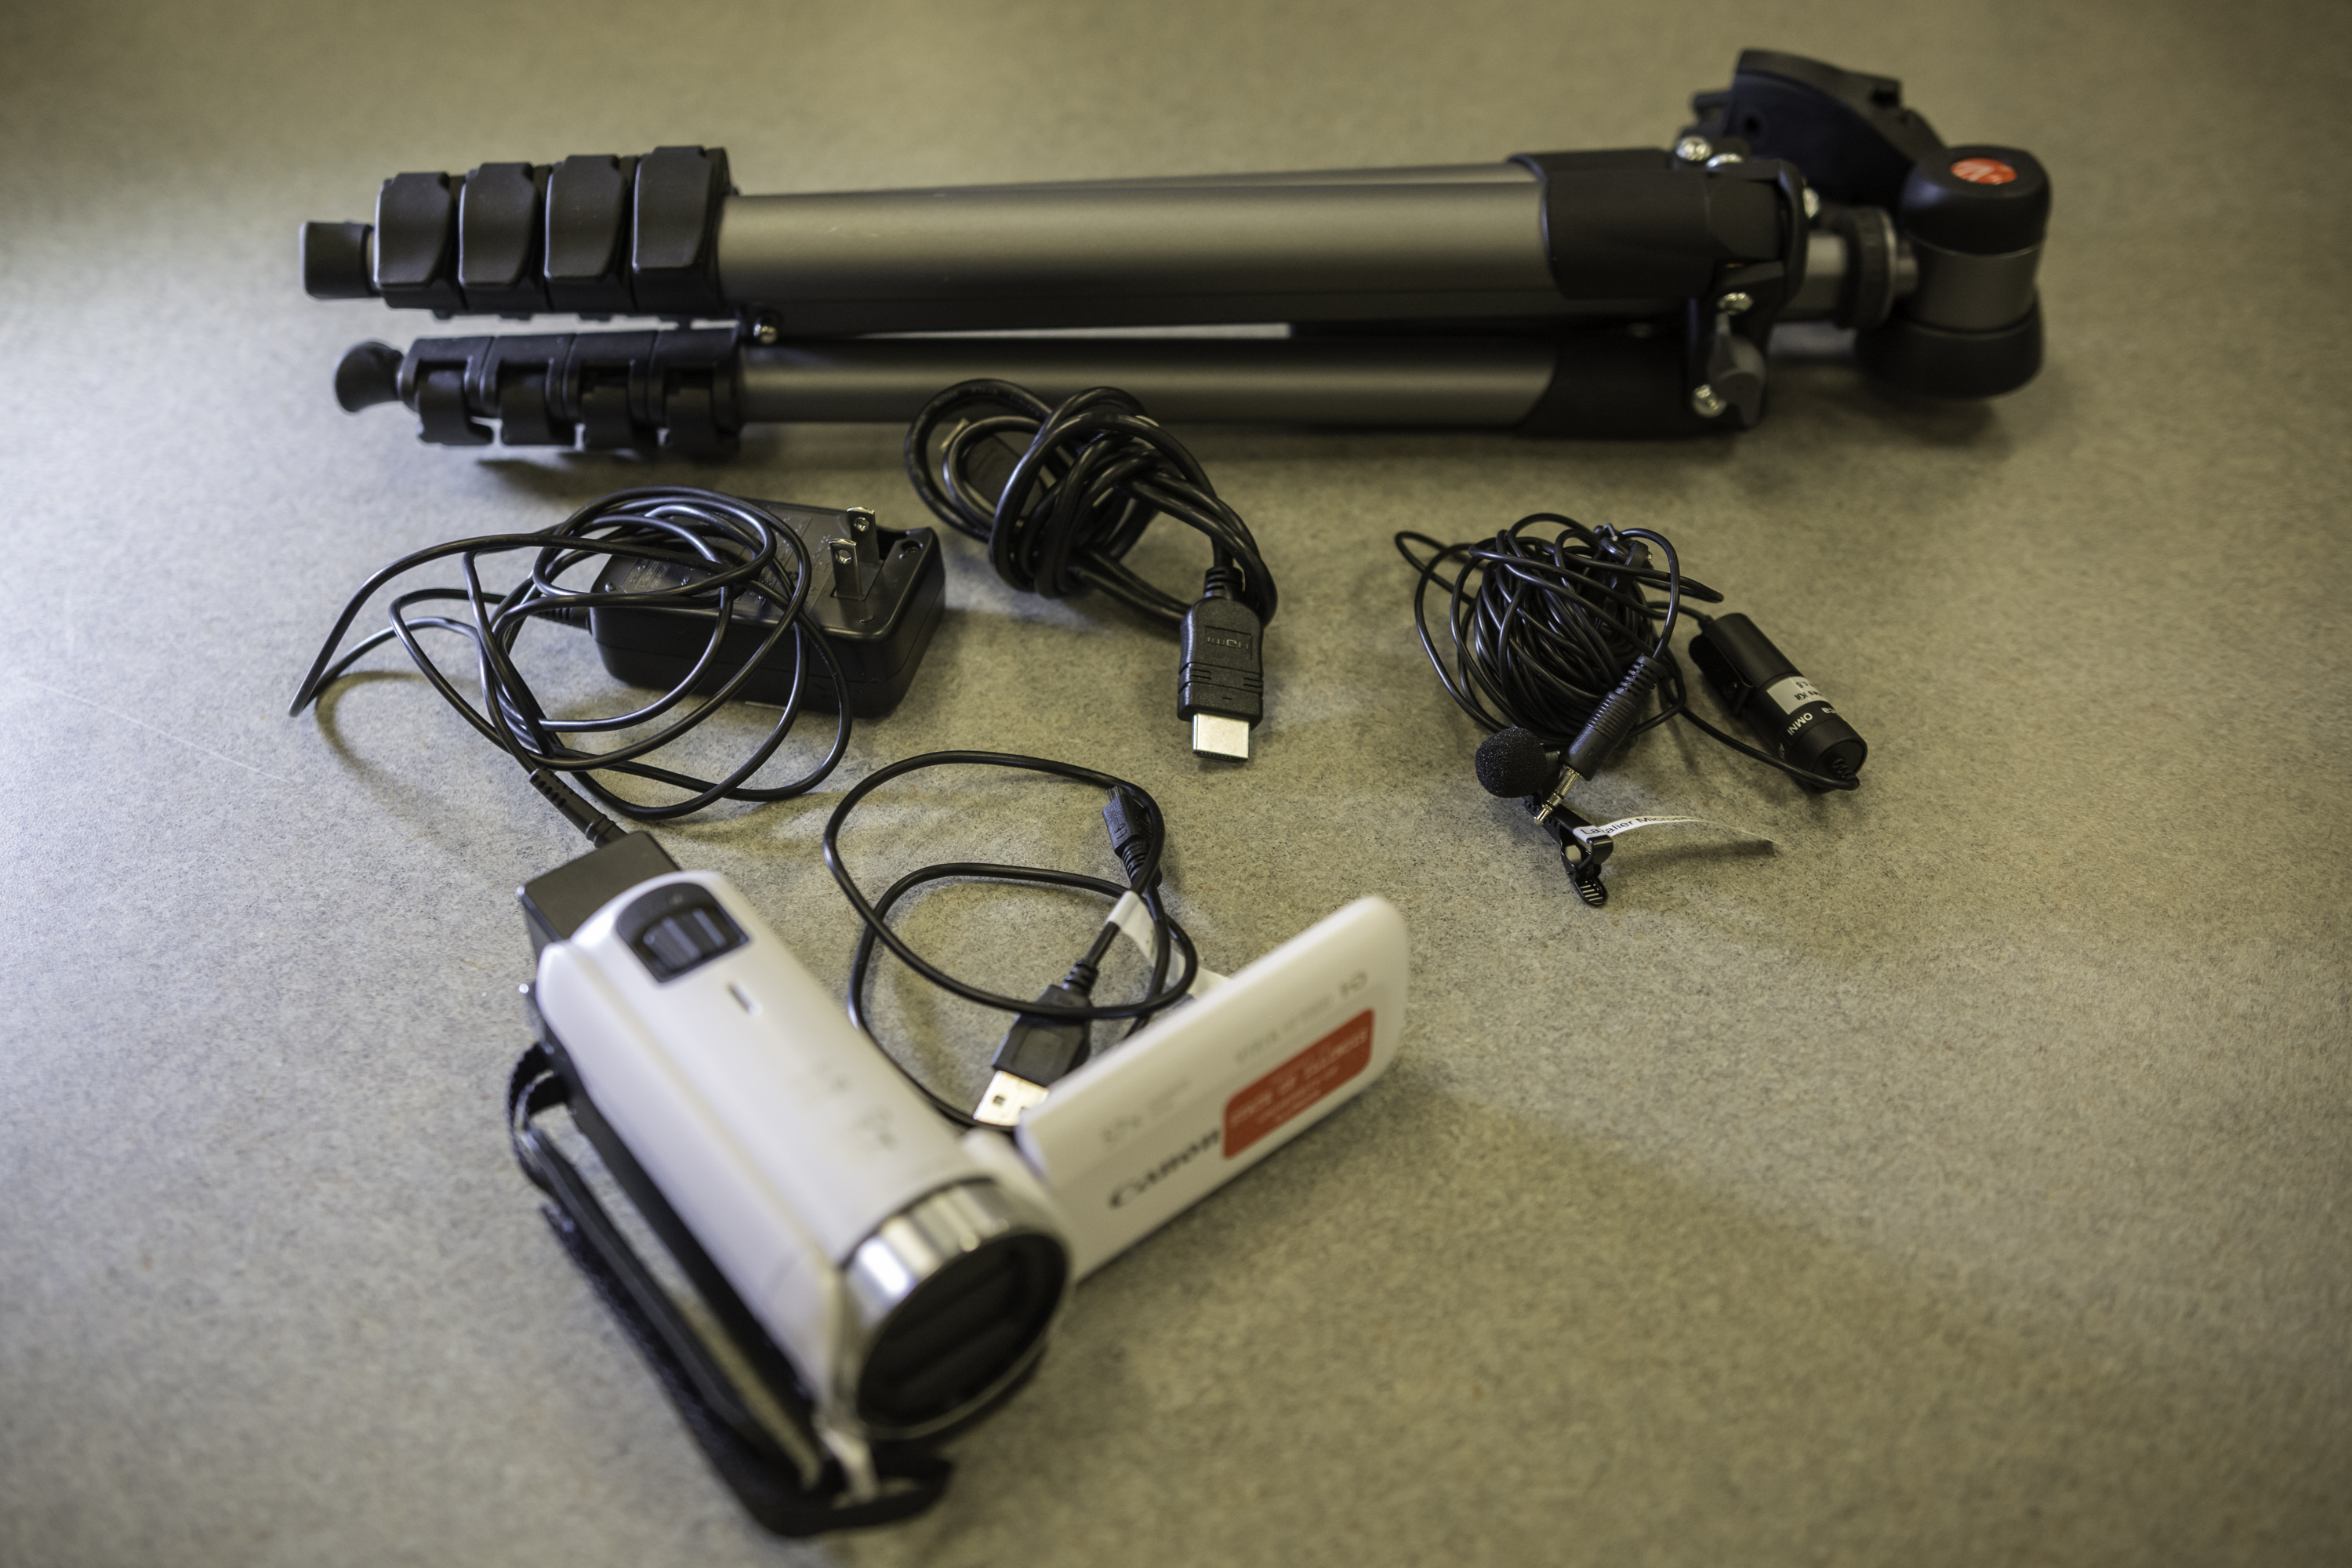 image of Canon camcorder, tripod, and lavalier